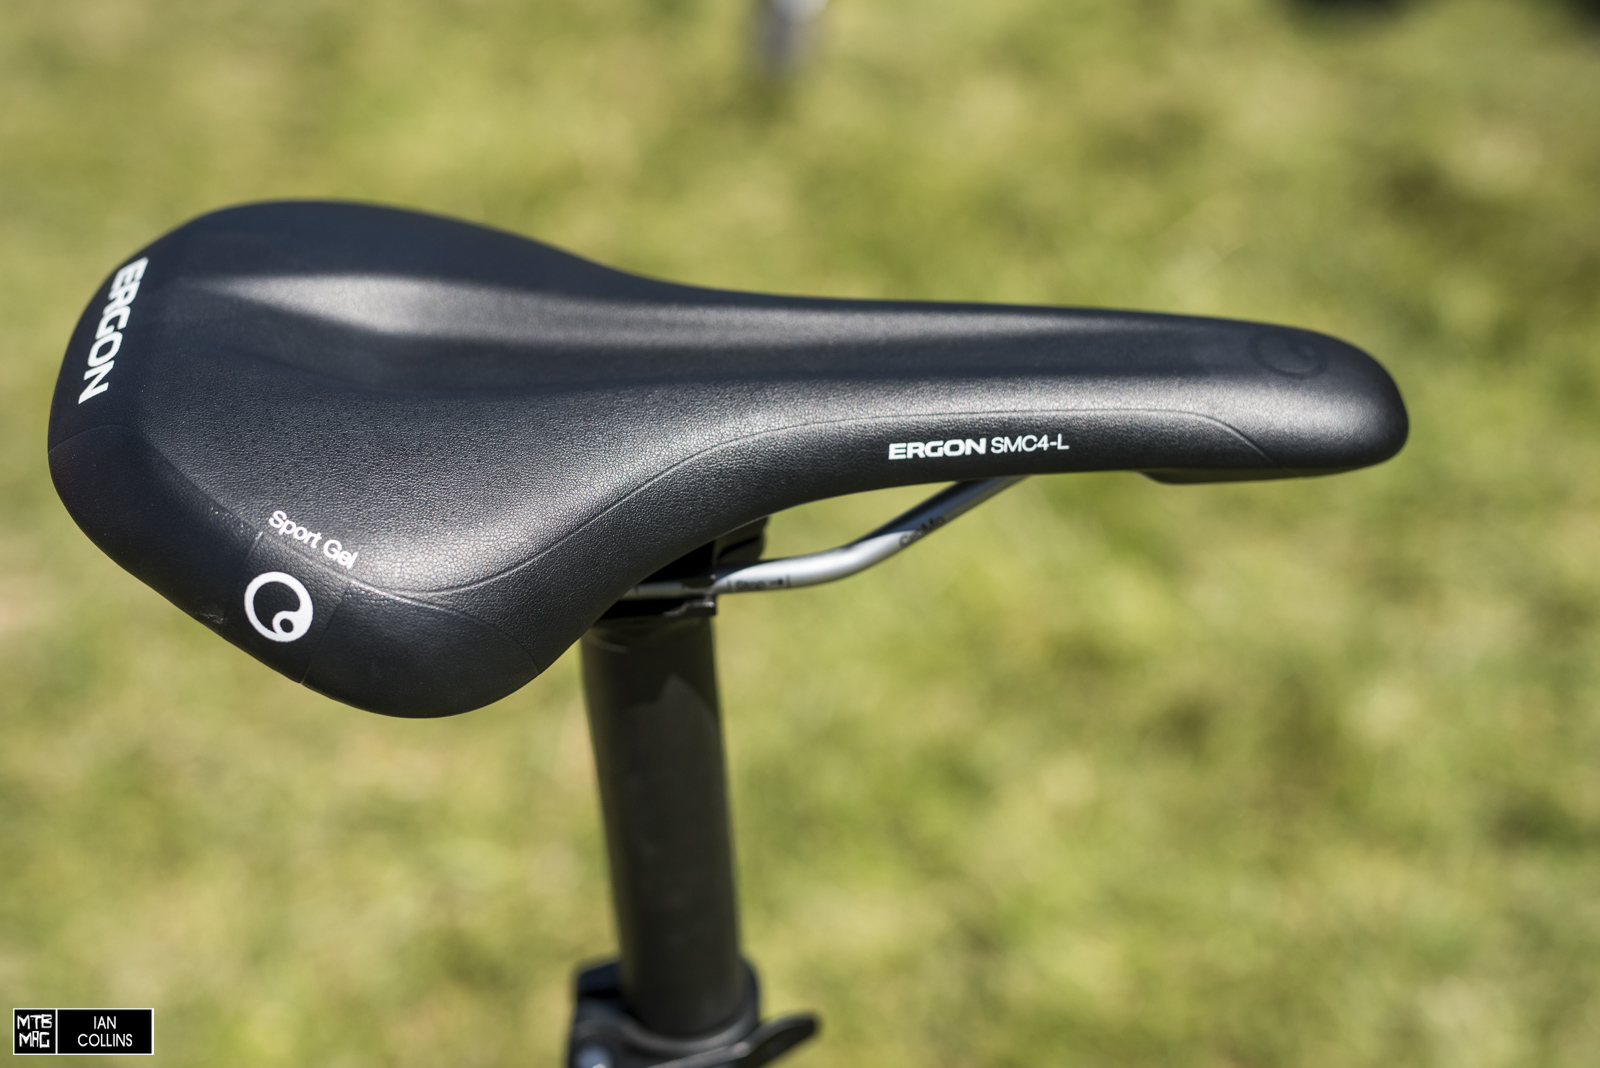 New Ergon SMC4-L saddle. A bit wider with a bit more gel and comes in multiple widths. We'll be testing one shortly. Stay tuned.